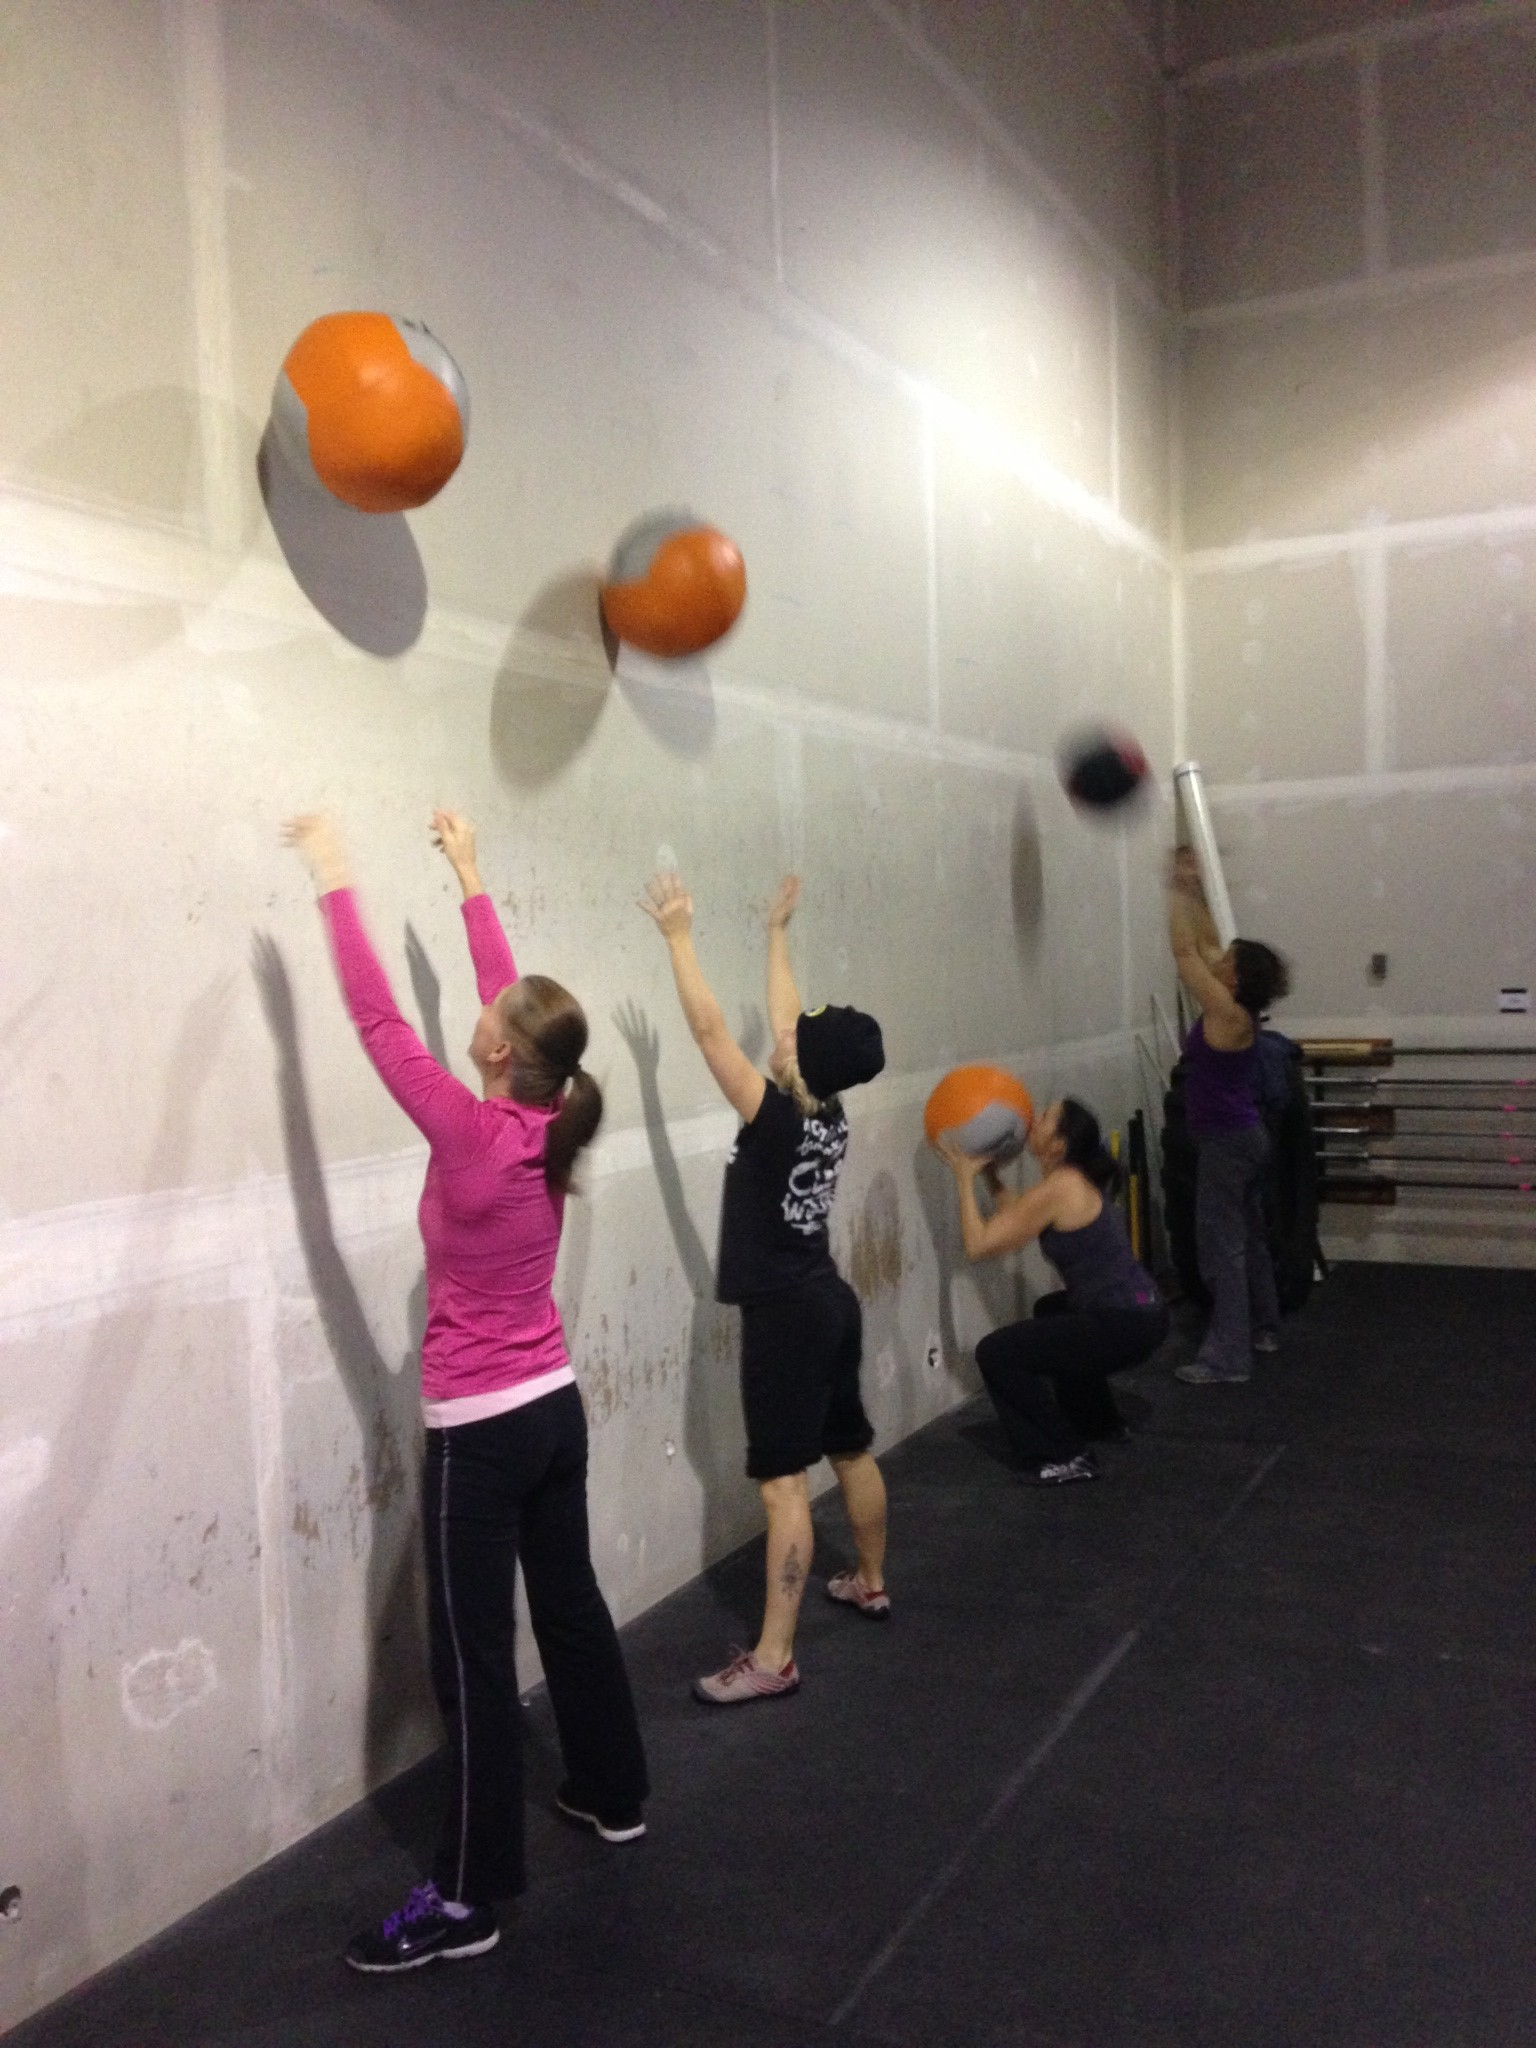 Who doesn't love Wall Balls? Kendra? Chirs? Jill? Winner gets $50.